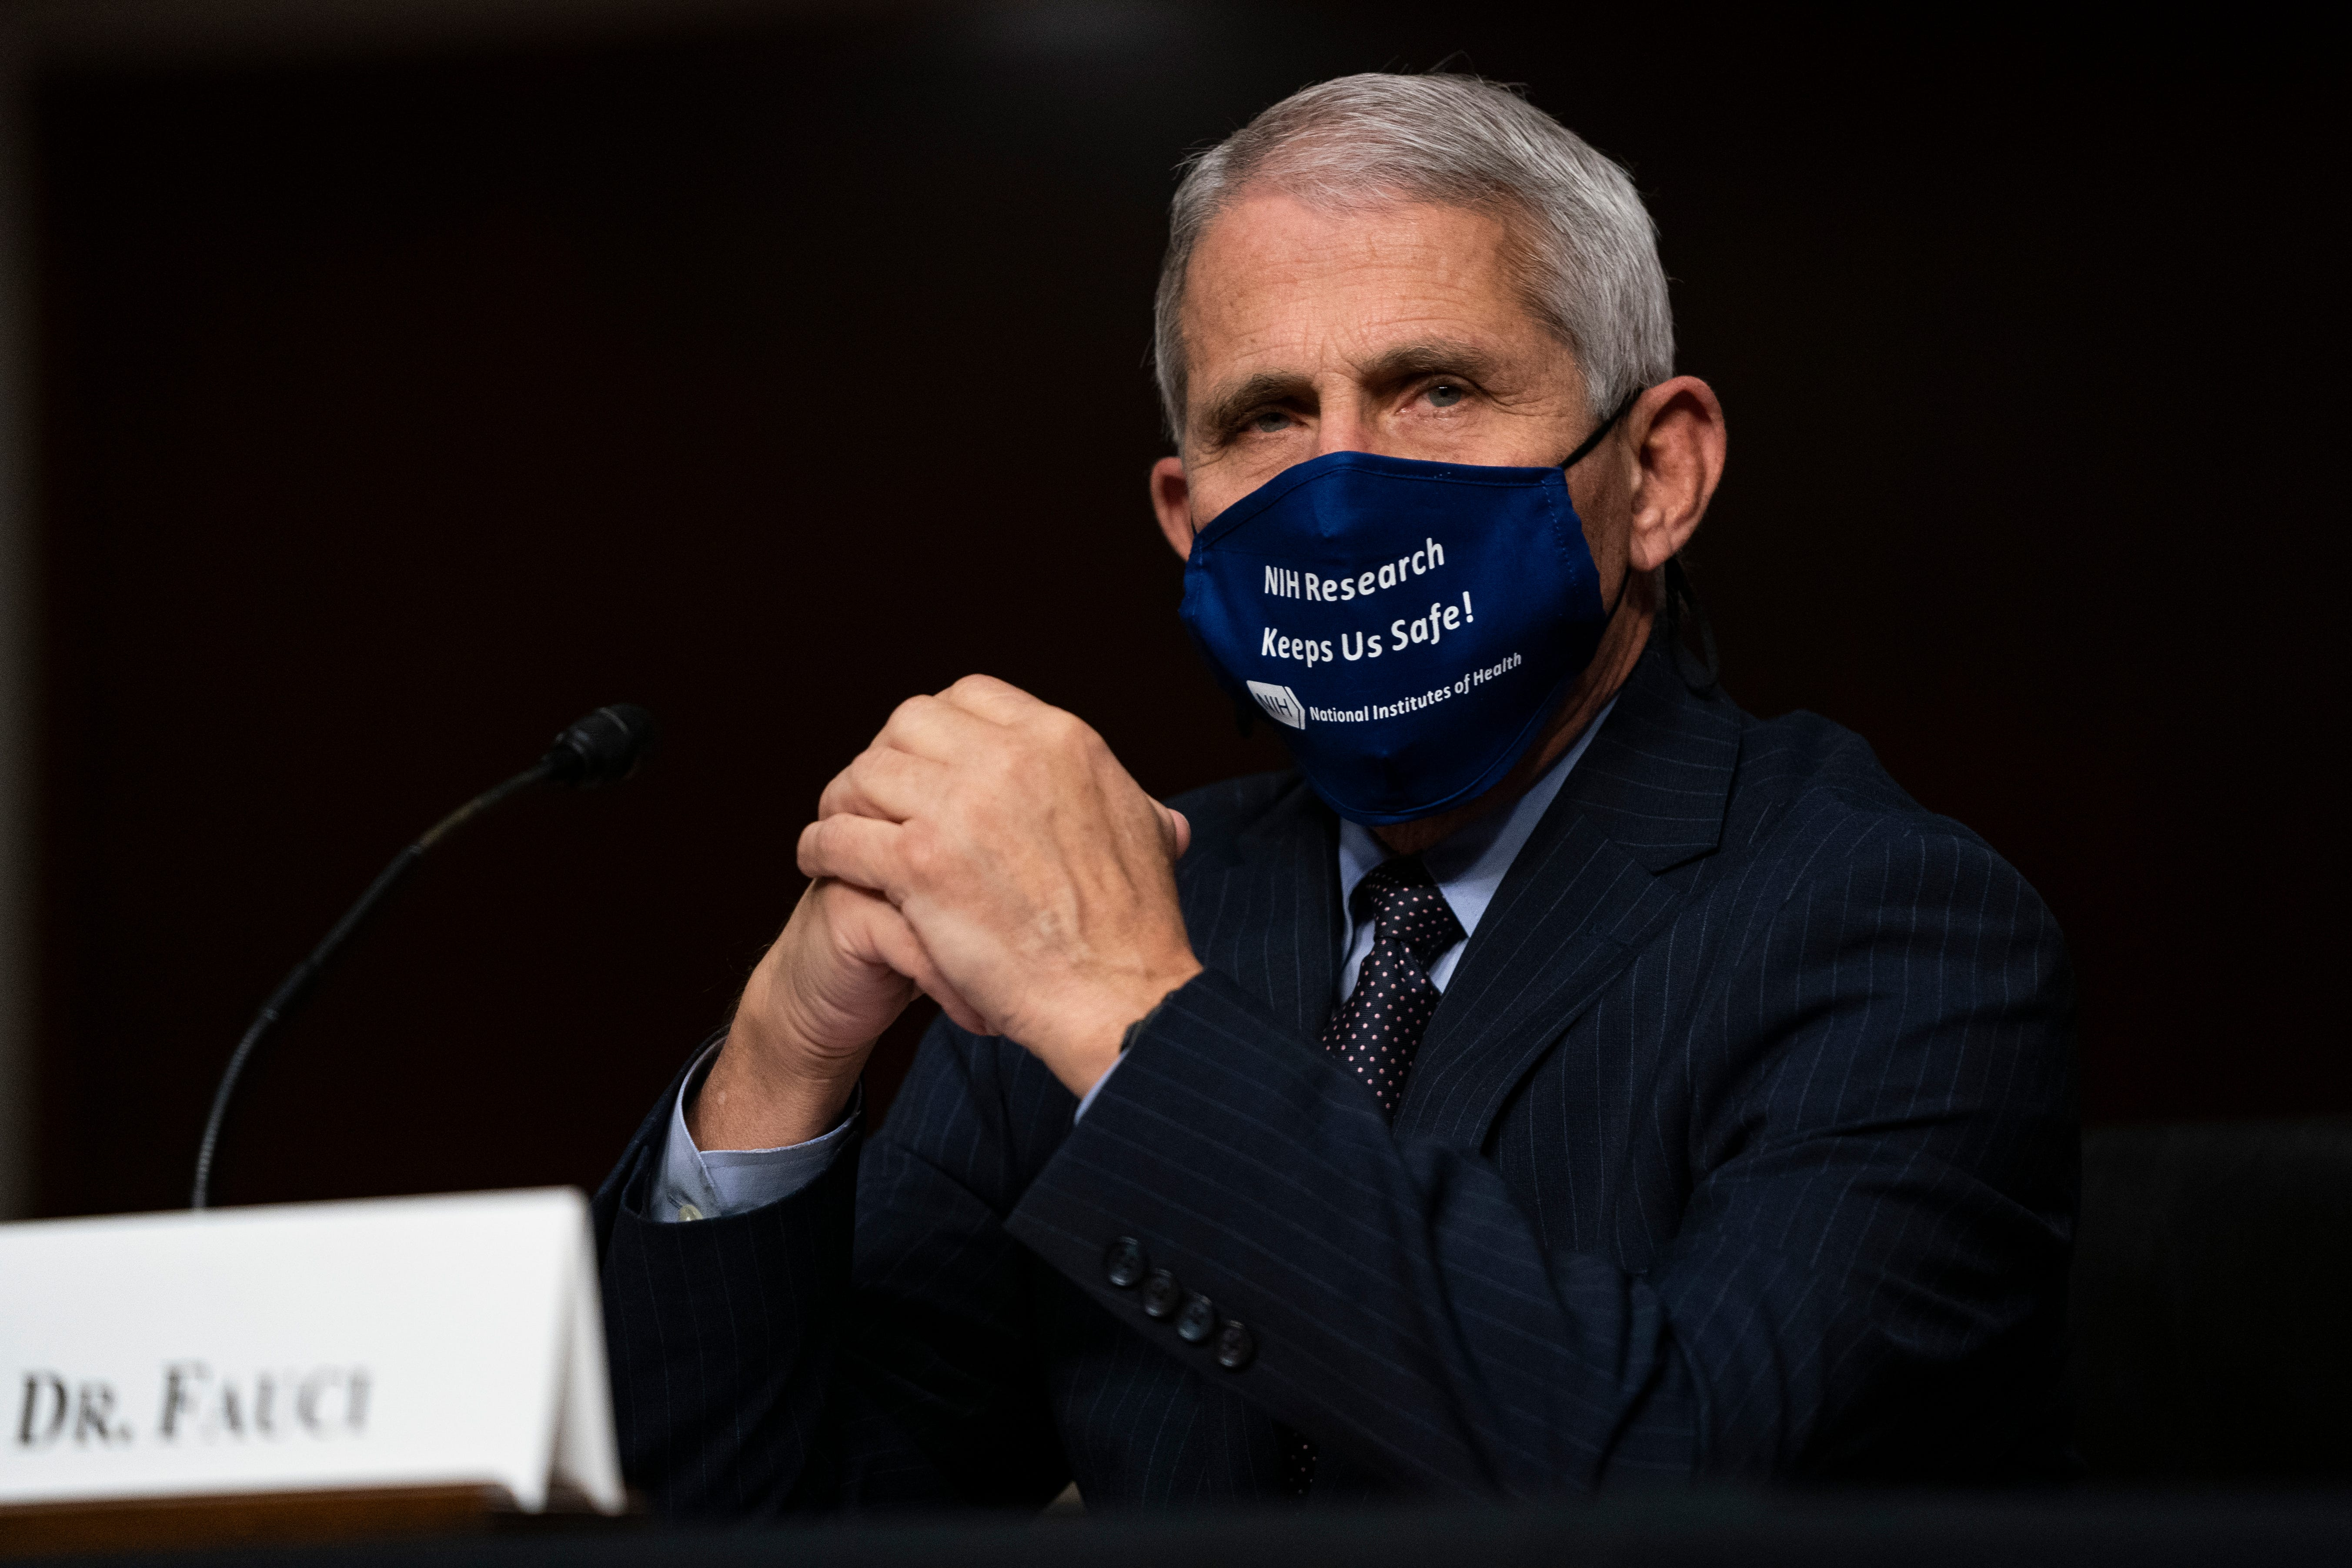 Fauci says mask mandate may be necessary as COVID-19 cases surge across US